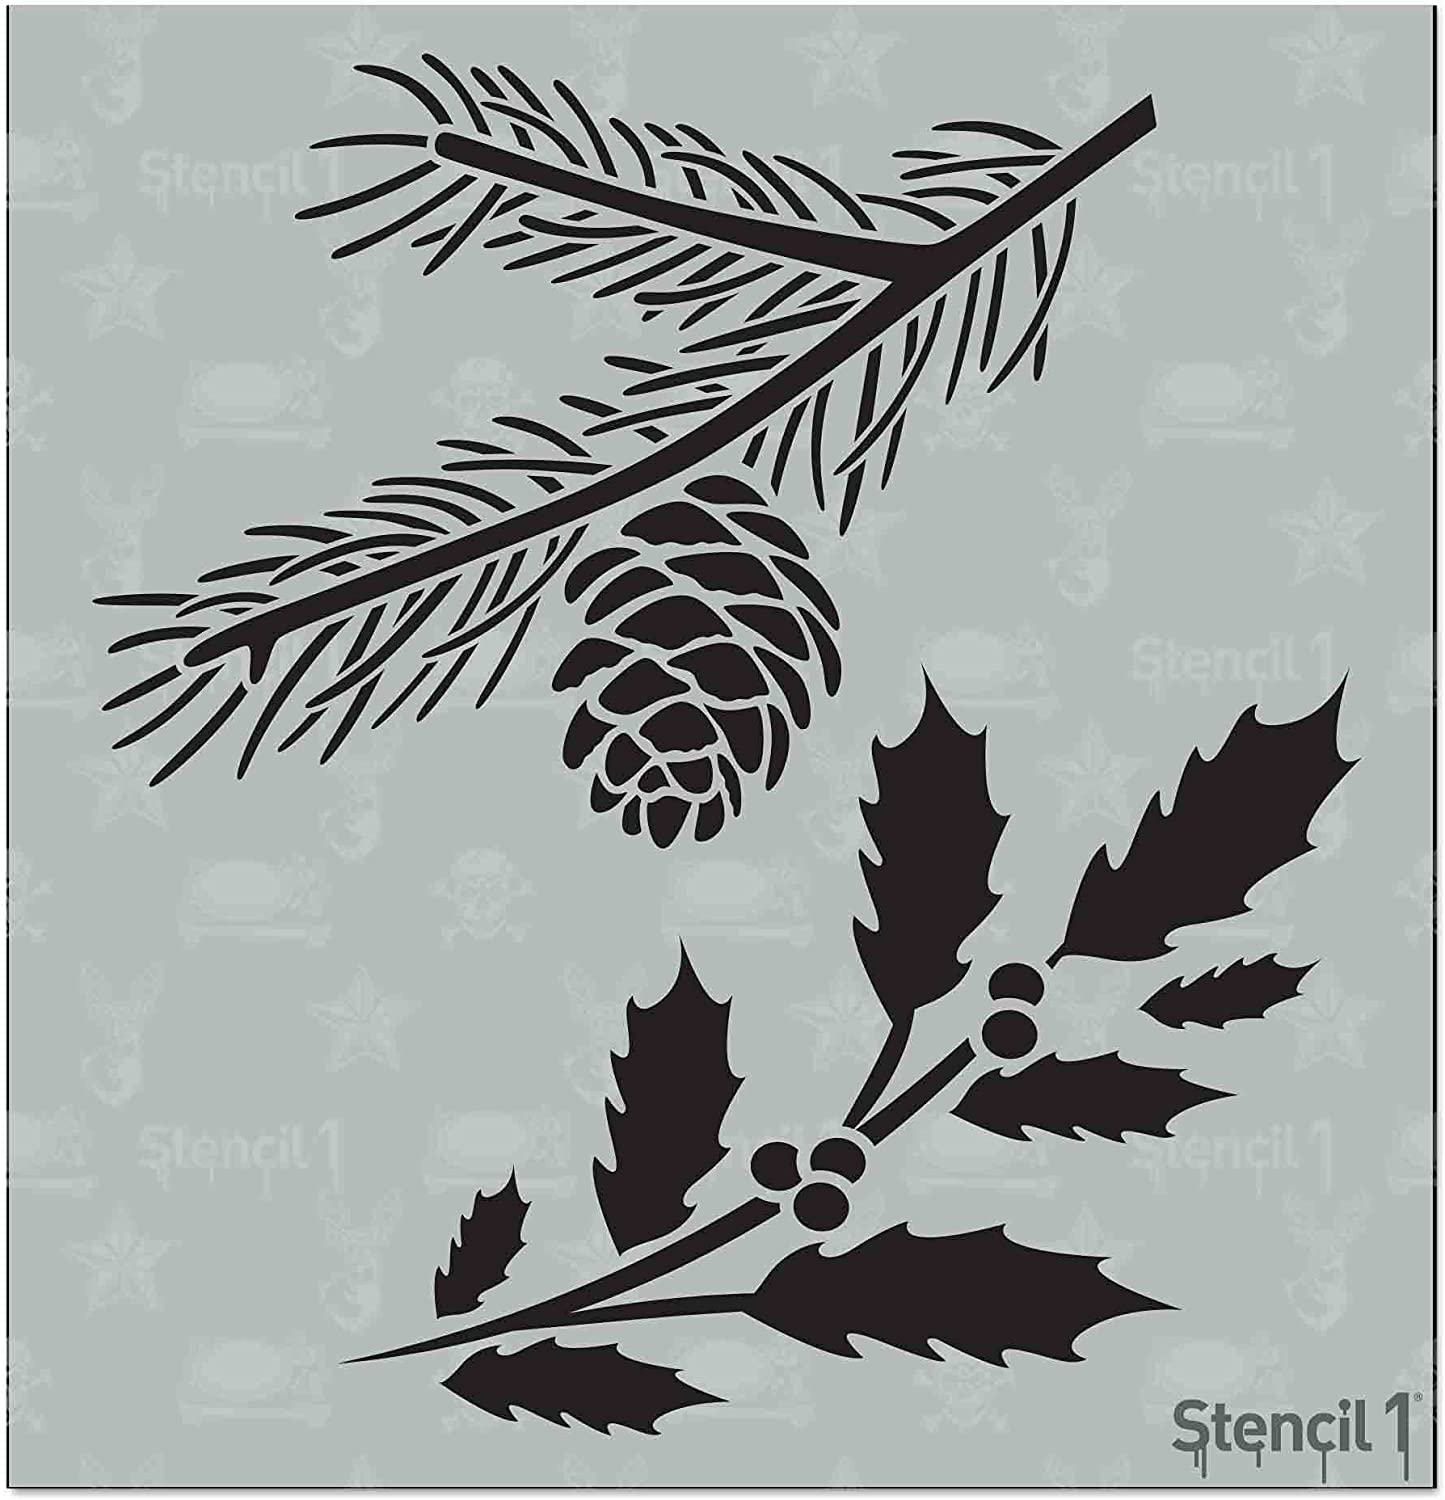 Stencil1 Holly and Evergreen Branches Stencil - Lightweight Reusable Mylar Template Stencil Great for Winter Holidays & Christmas Home Decoration - 5.75